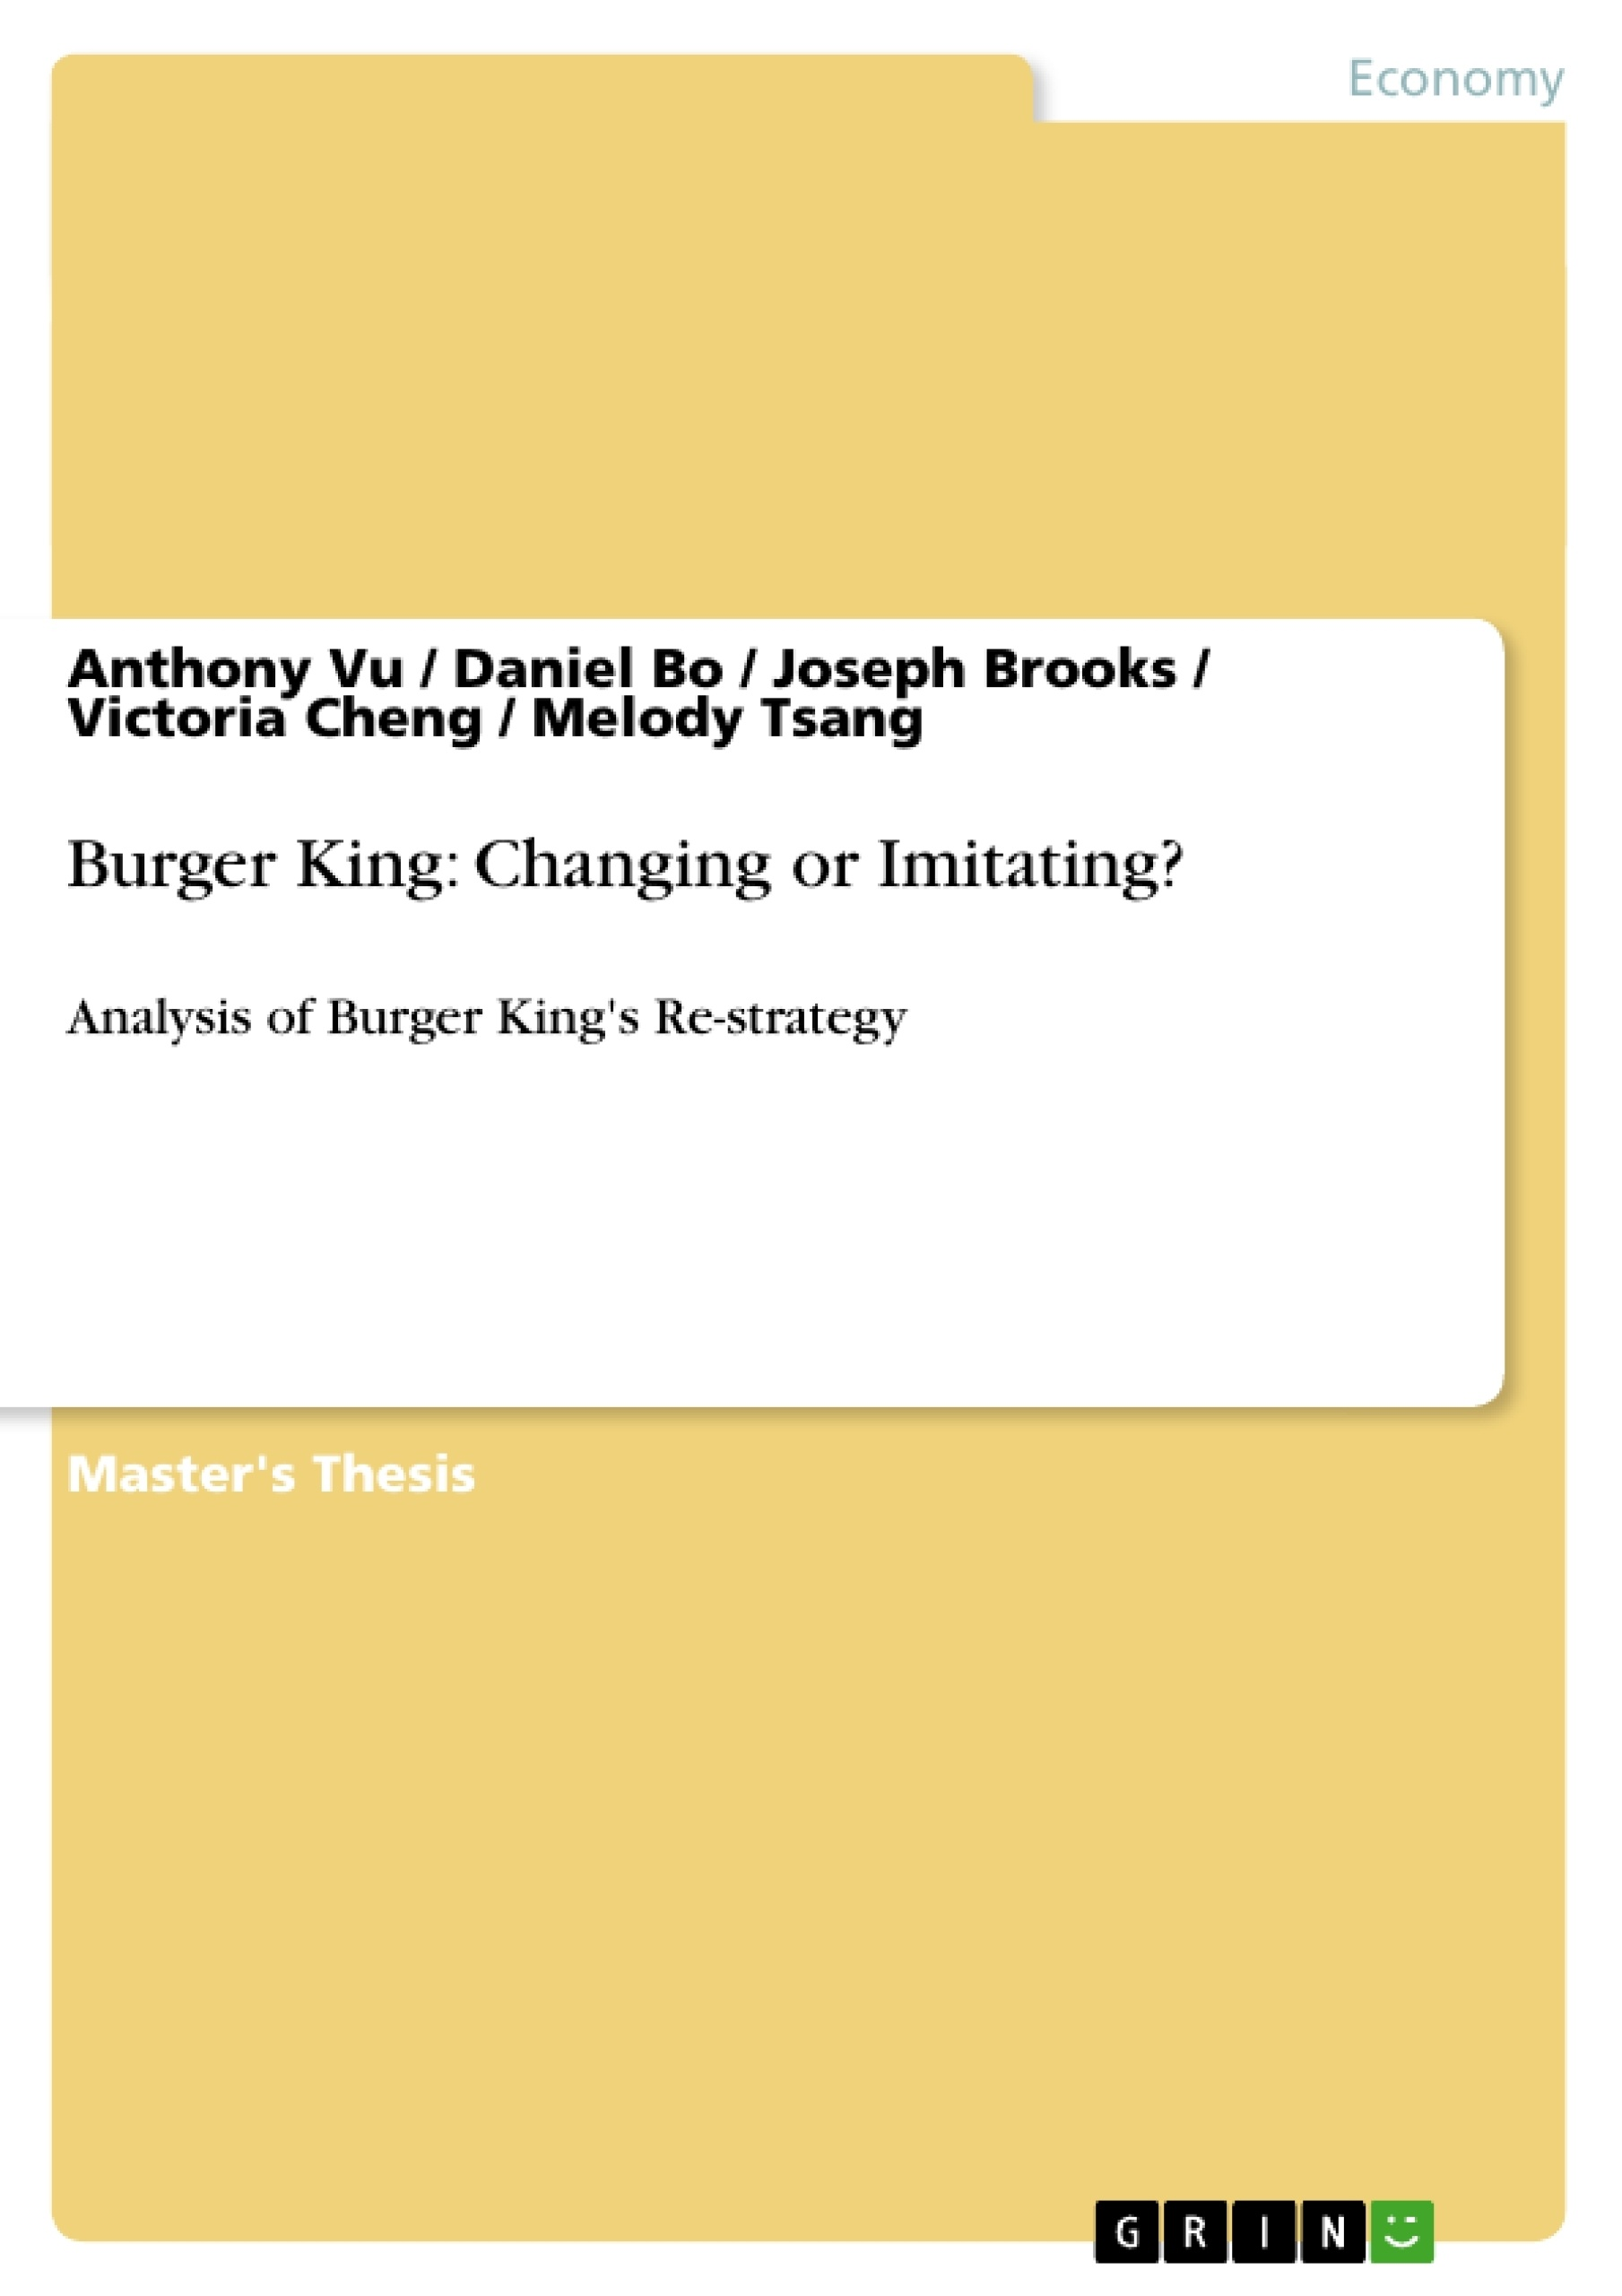 burger king financial ratios